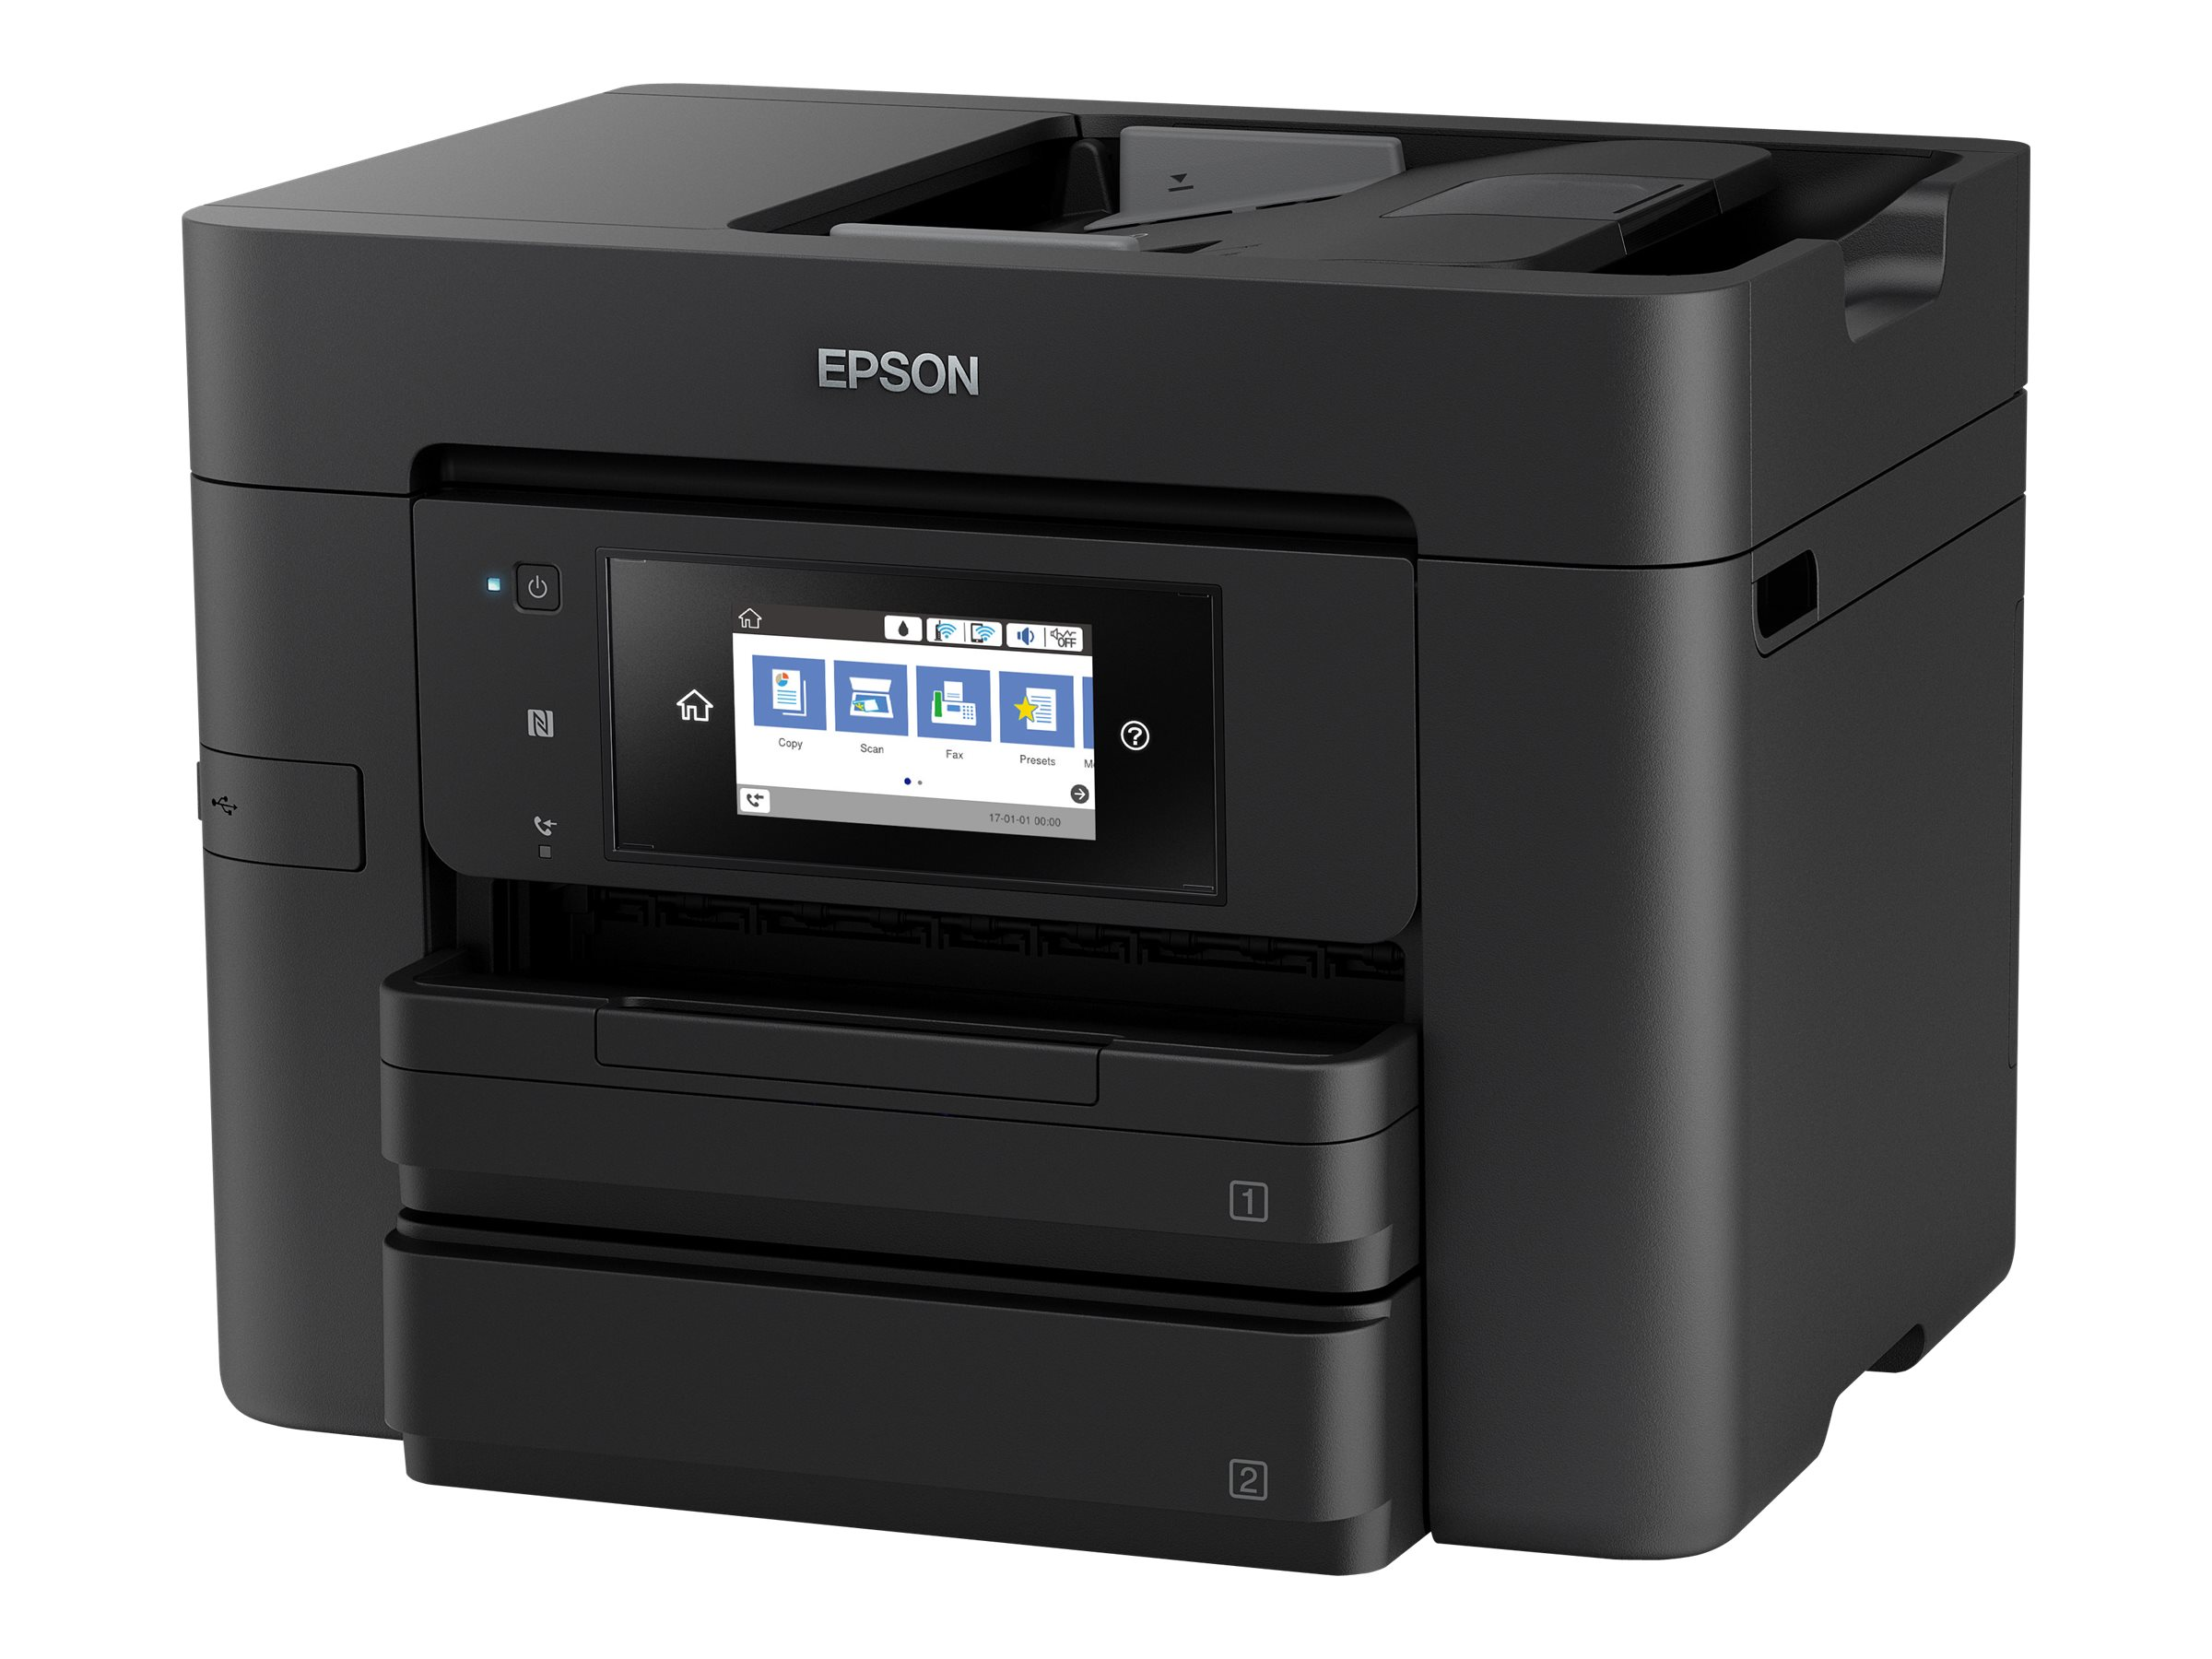 Epson WorkForce Pro WF-4740DTWF - Multifunktionsdrucker - Farbe - Tintenstrahl - A4 (210 x 297 mm)